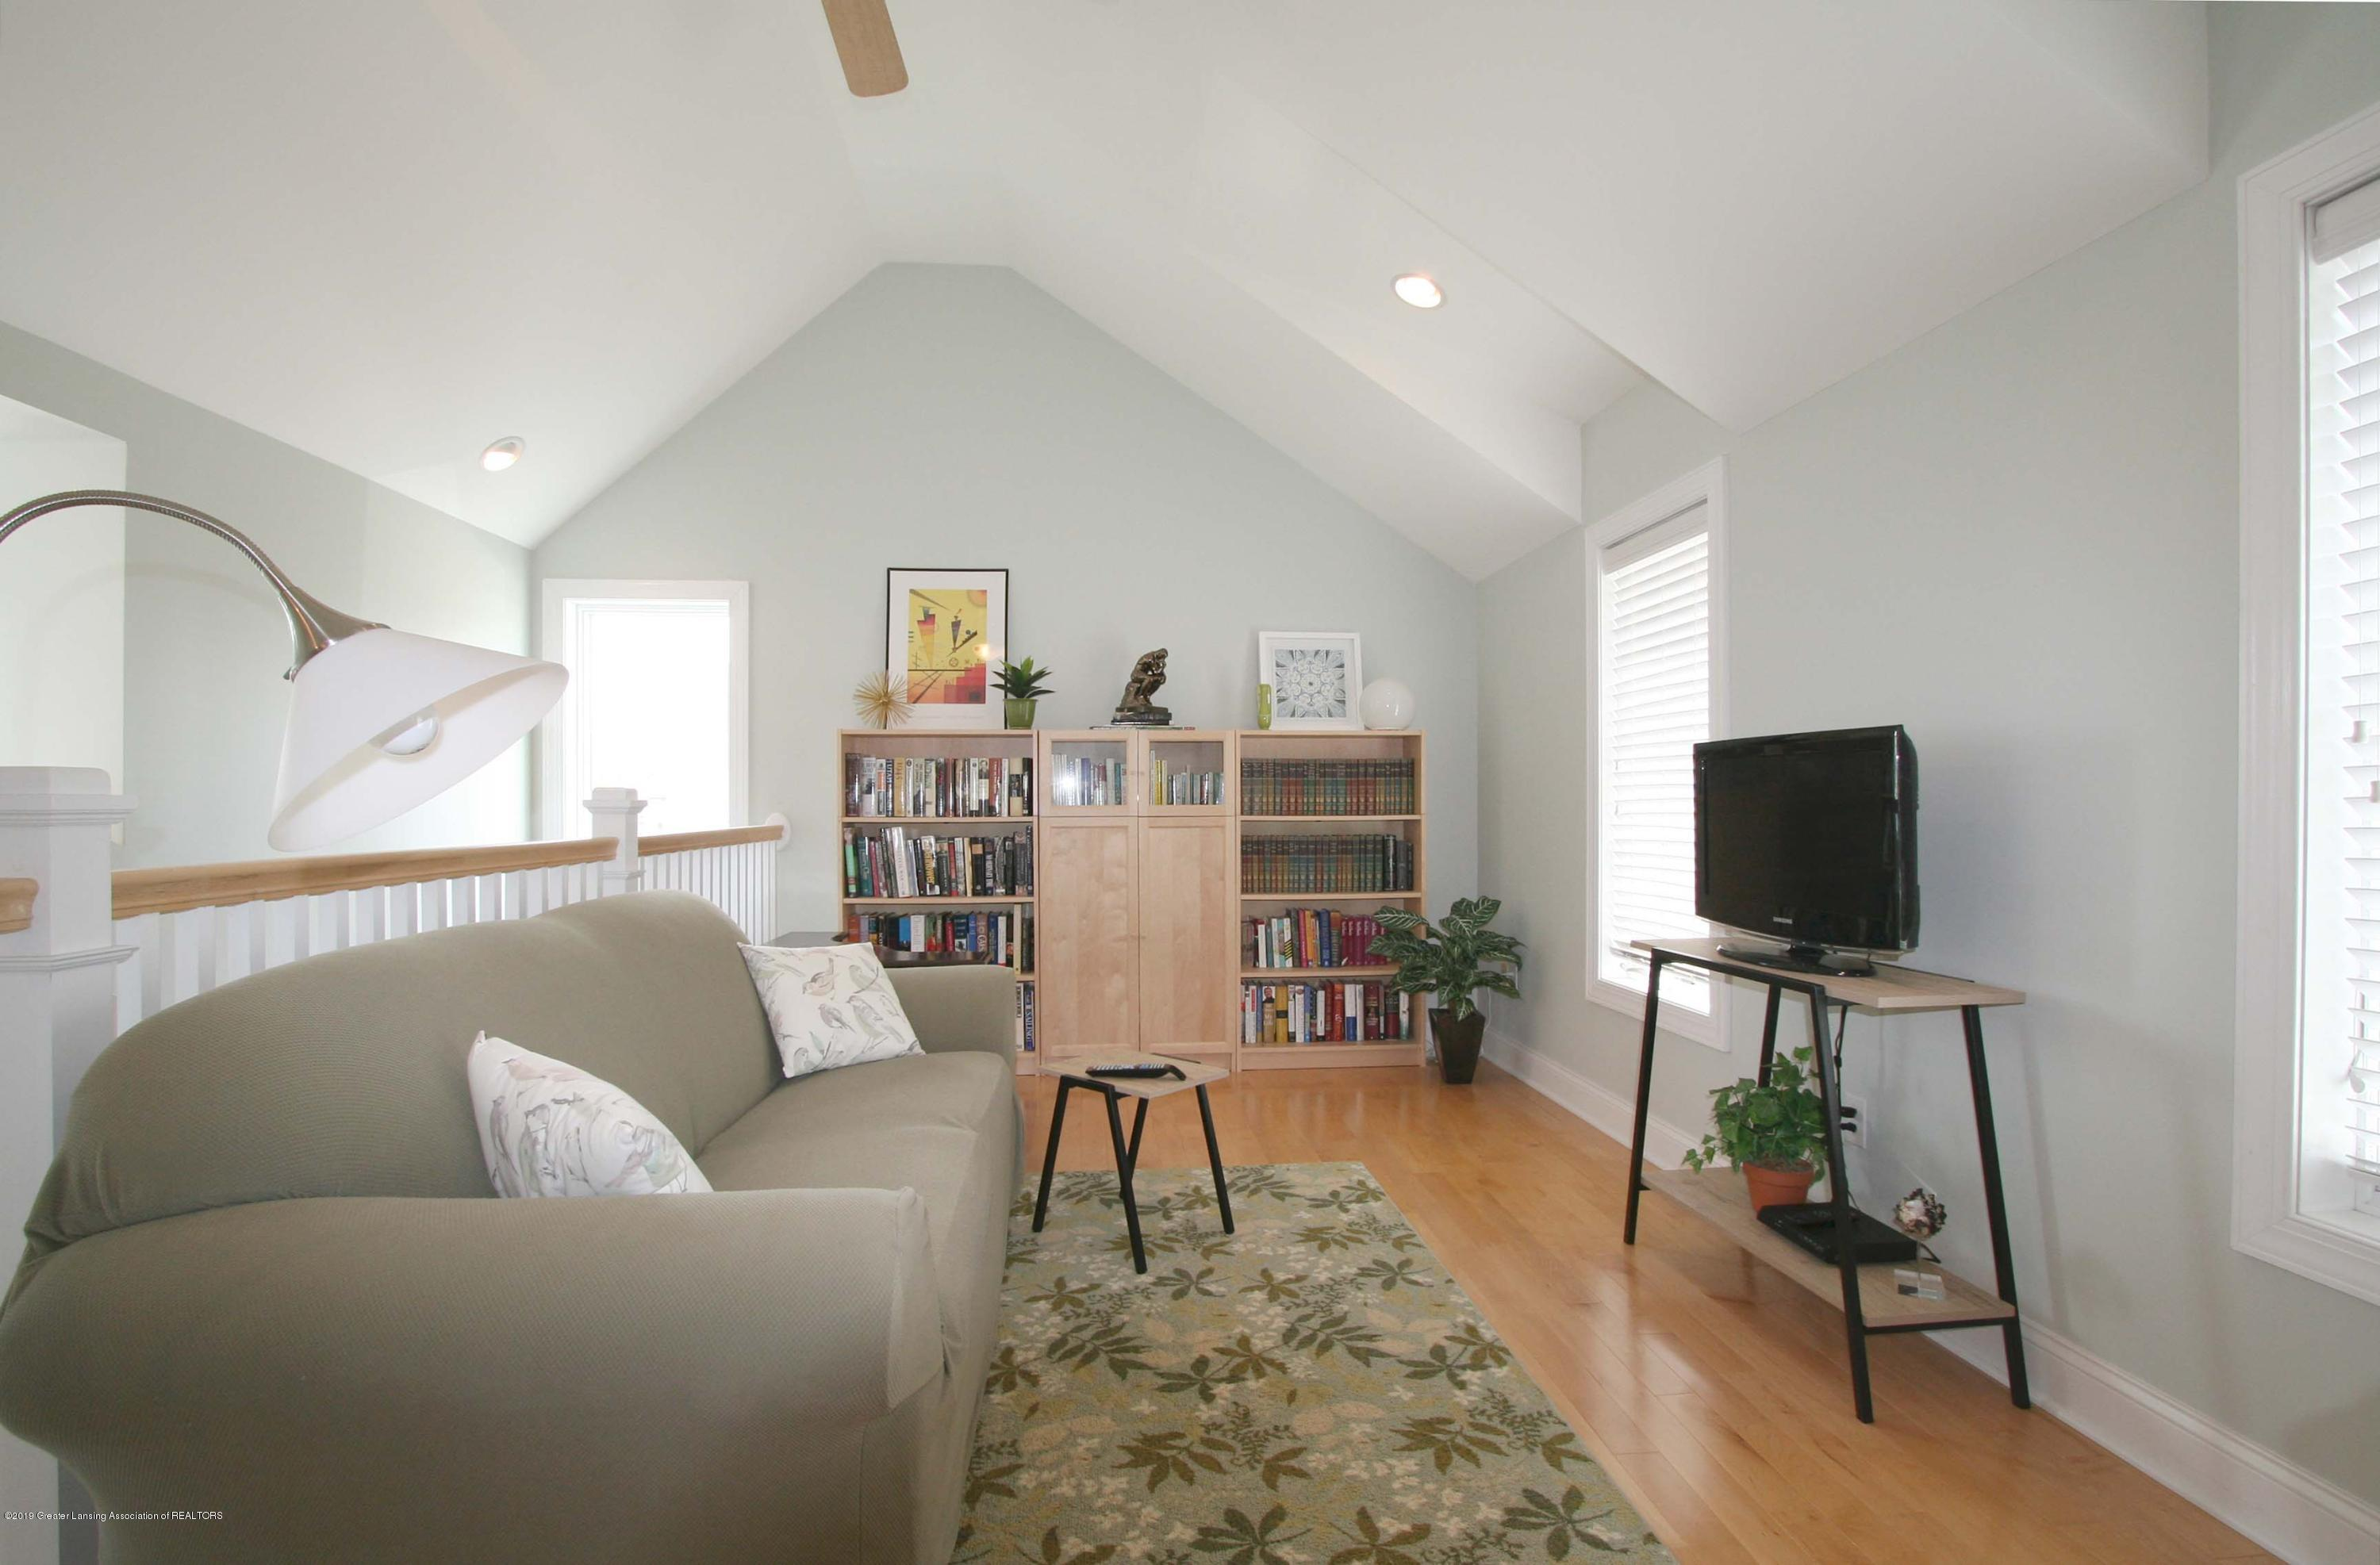 4271 Anderson Rd - 026 - 26